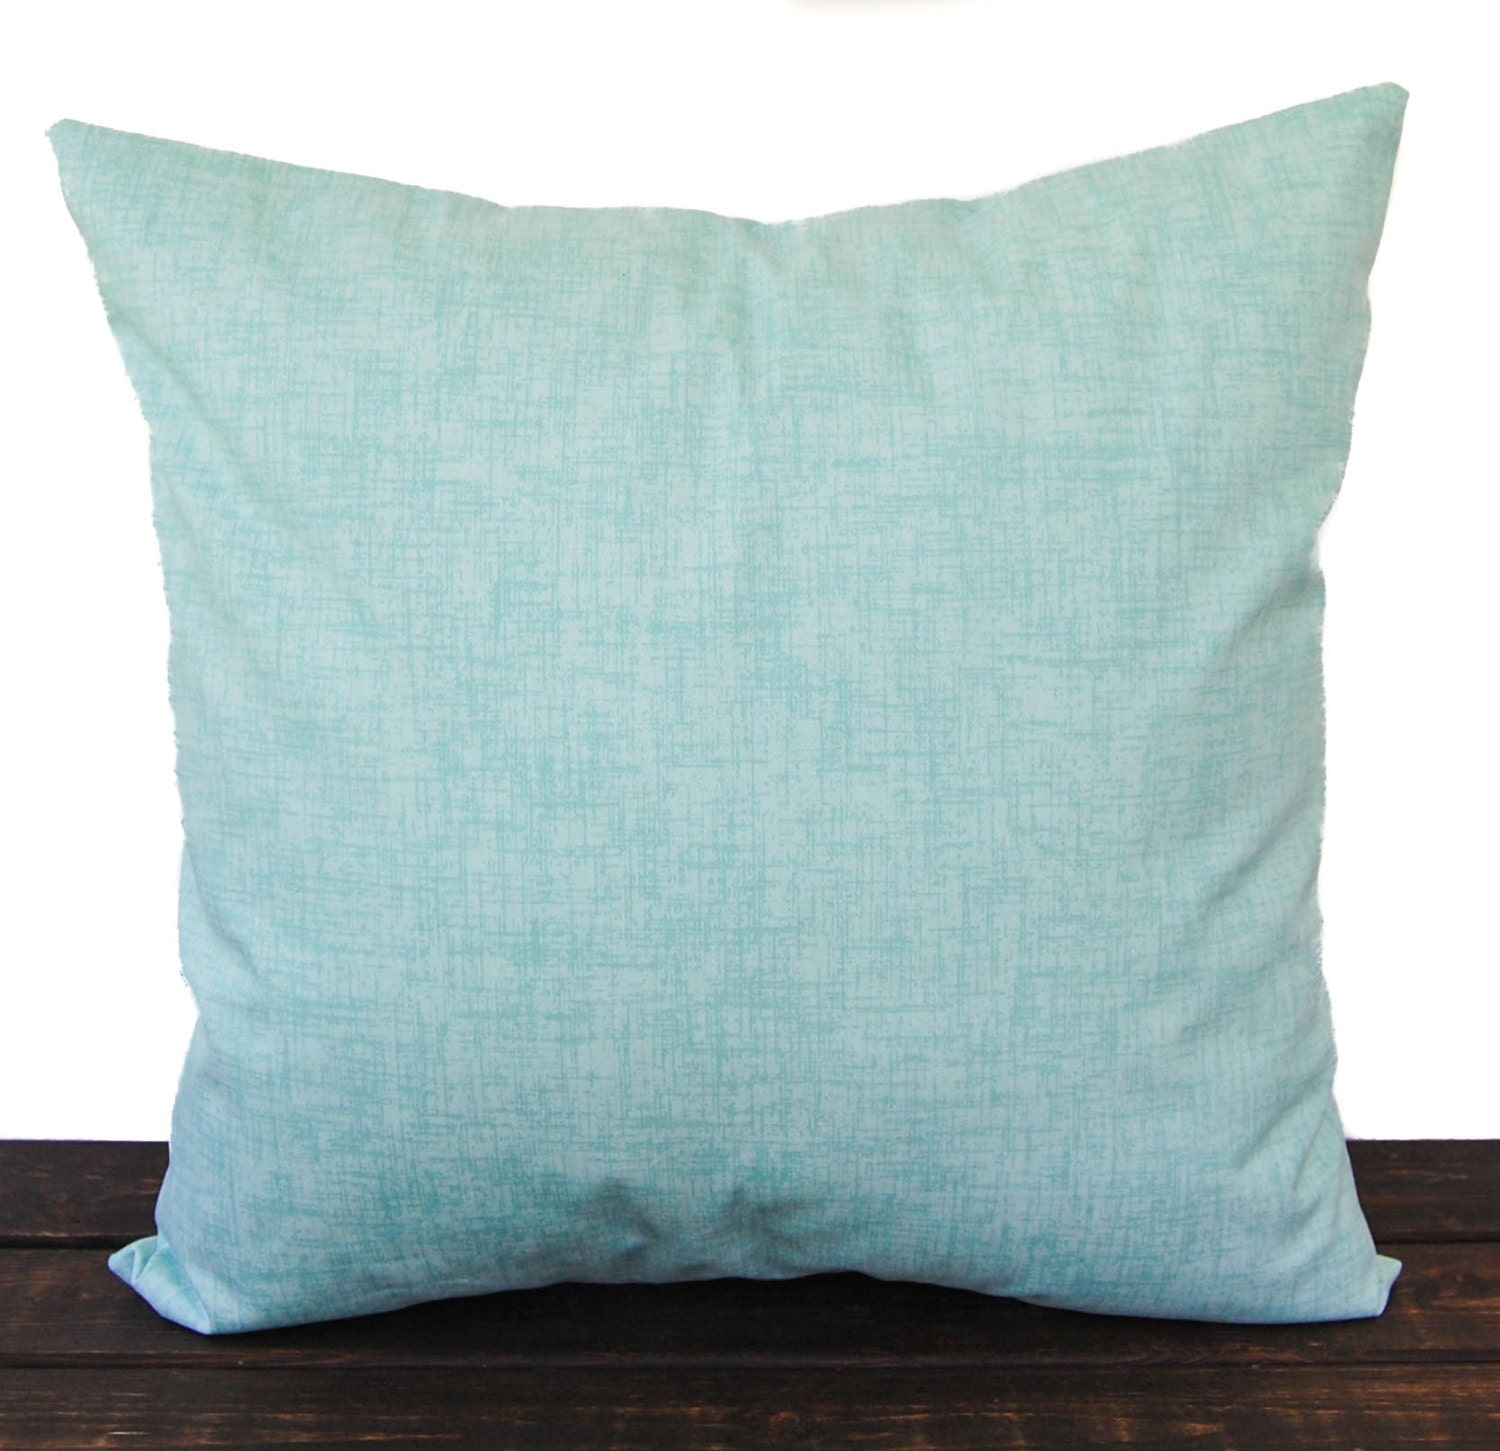 Throw Pillow Covers White : Throw pillow cover Canal blue sea foam white cushion cover